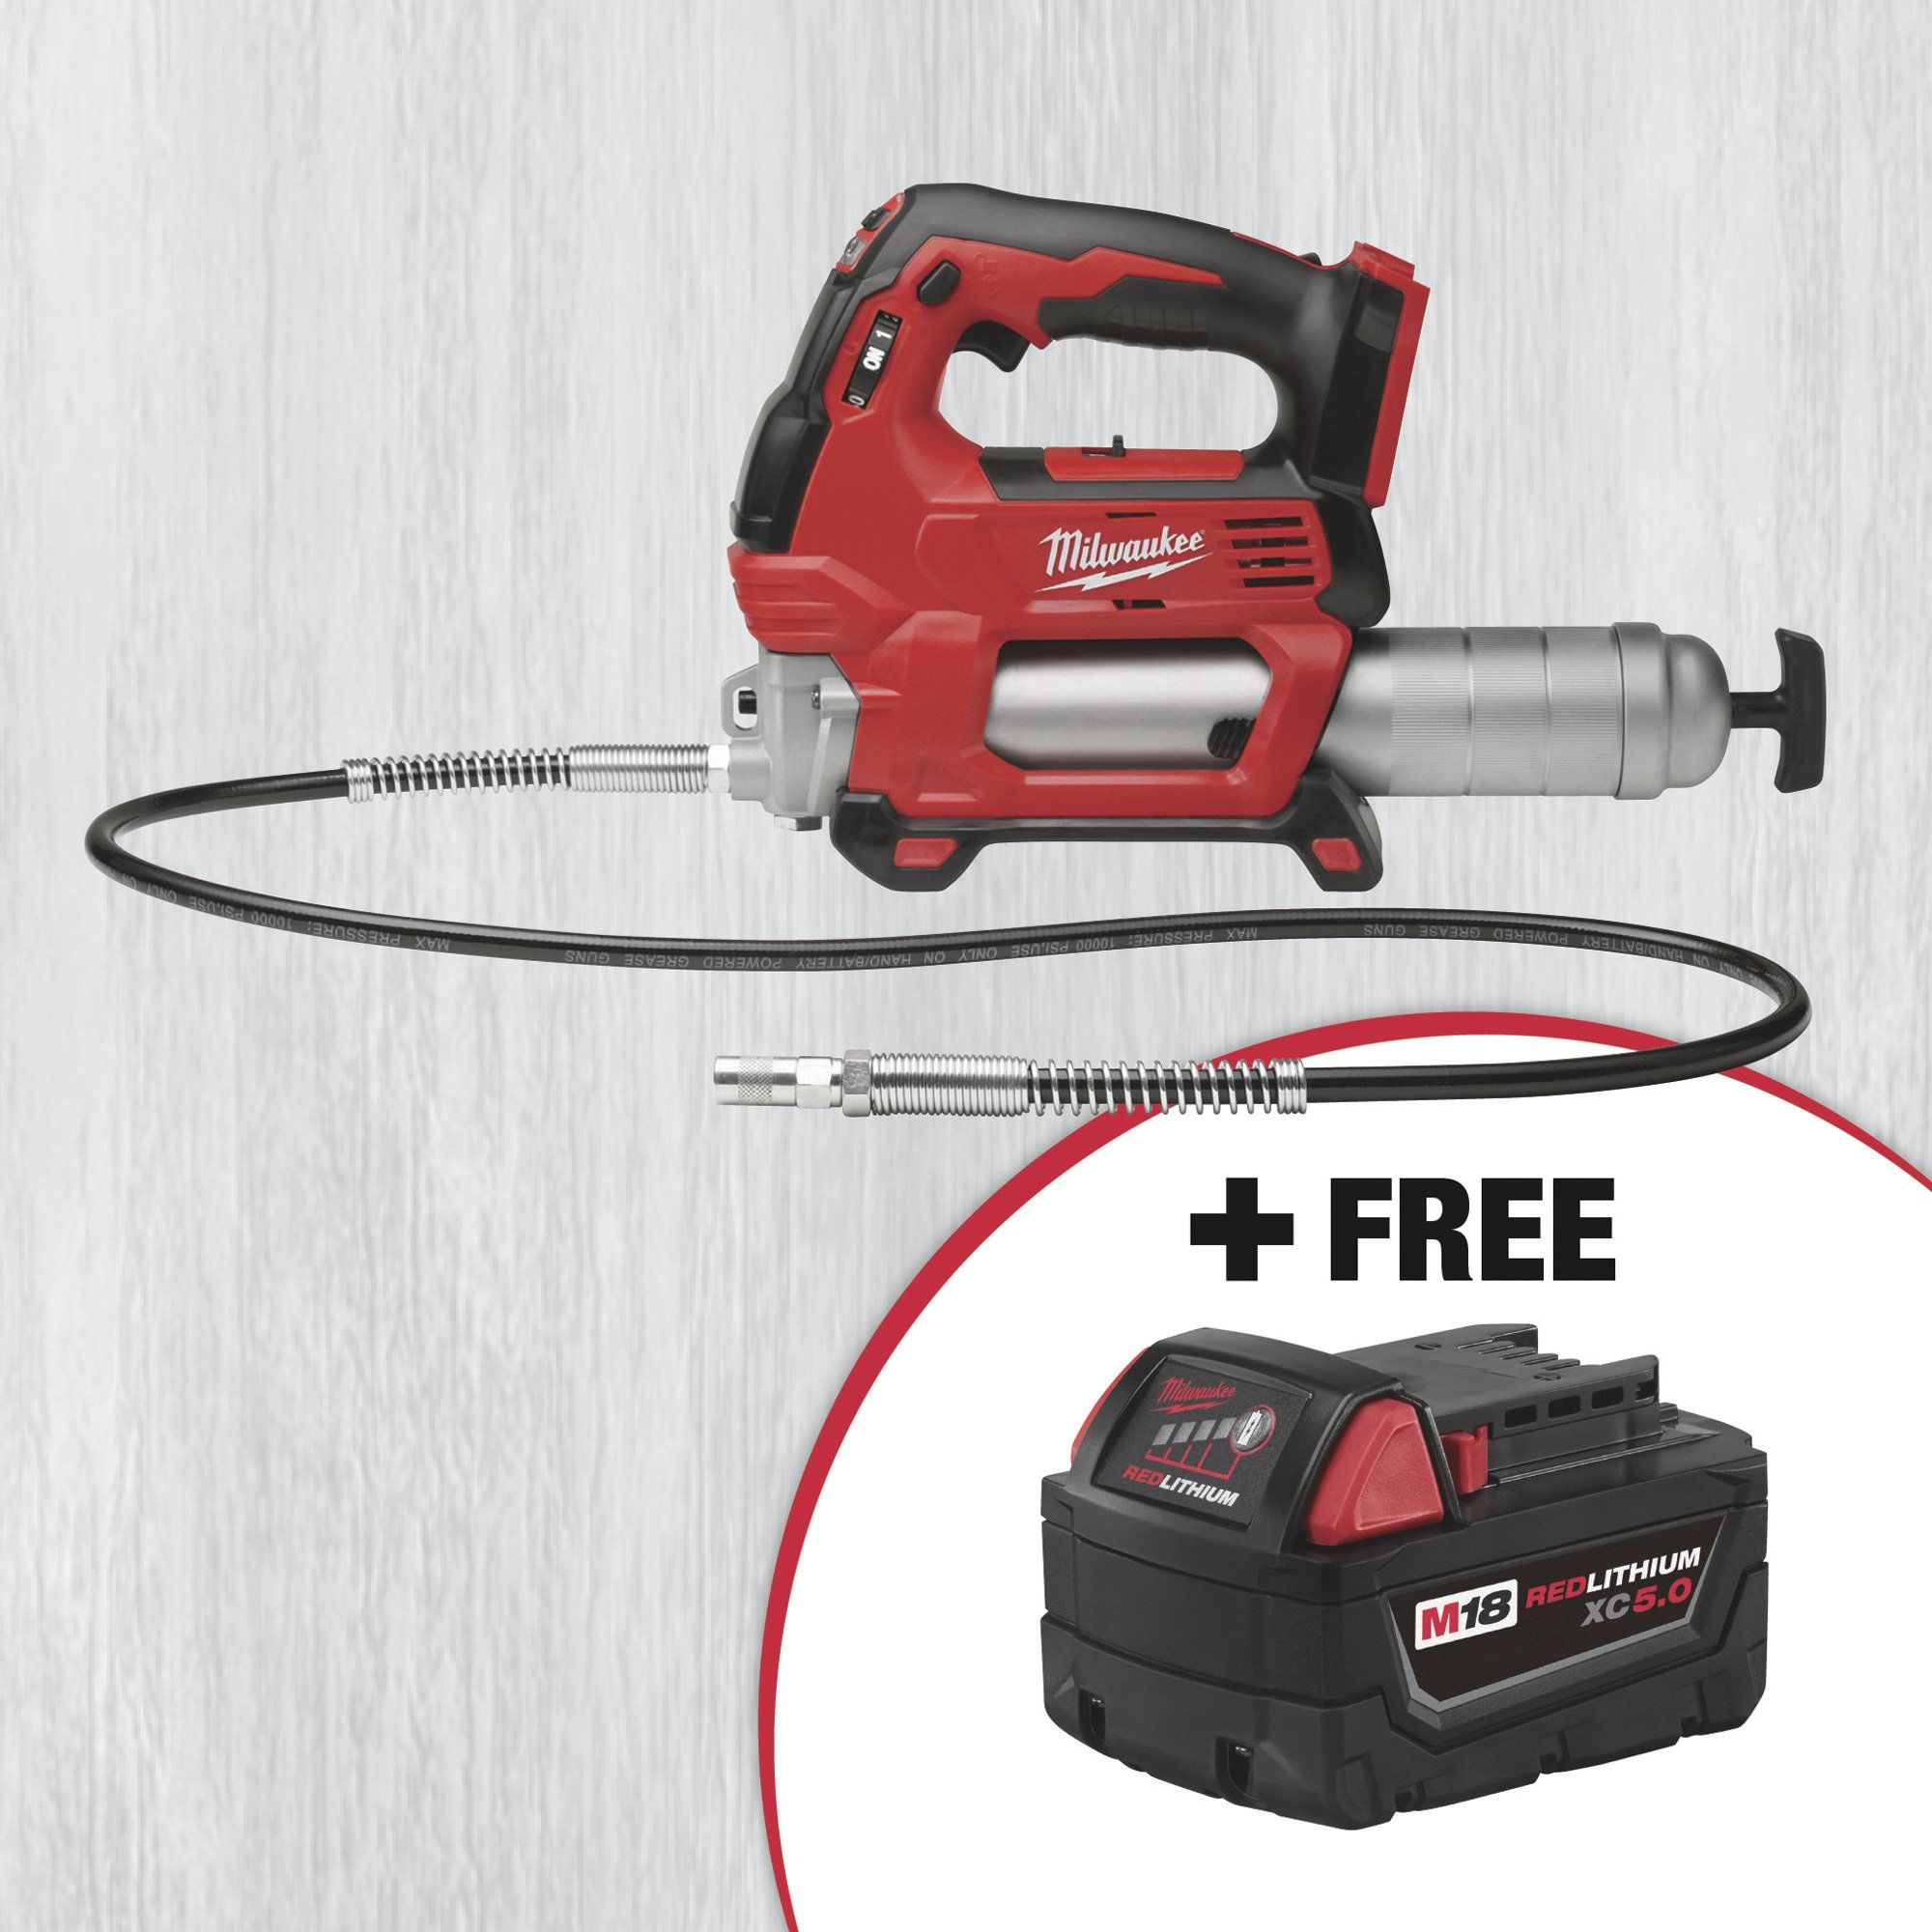 This Milwaukee® M18™ Cordless 2-Speed Bare Grease Gun (Model# 2646-20) comes specially packaged with an M18™ REDLITHIUM™ XC 5.0 battery pack — a $309.99 Total Value! The Milwaukee® M18™ 18V Cordless 2-Speed Grease Gun offers an incredible 10,000 PSI maximum operating pressure and industry-leading maximum flow rate of up to 10-oz. per minute. The high performance grease gun delivers unmatched versatility in the workplace.SAVE MONEY by replacing or adding specific tools that work with the M18 RedL